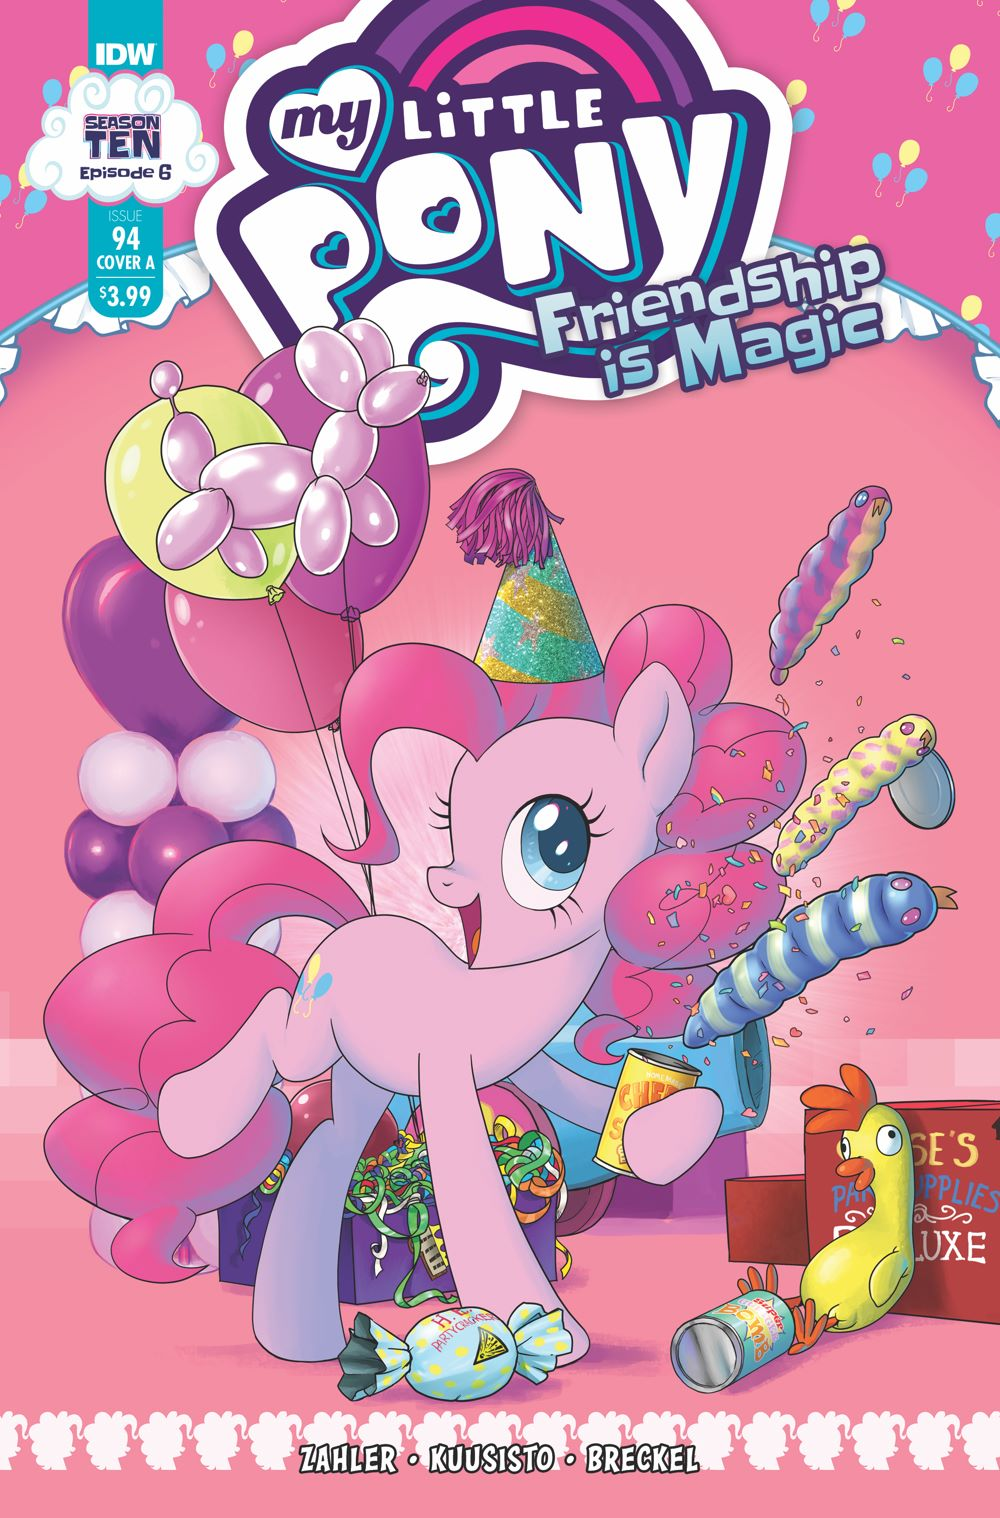 MLP94_06-coverA ComicList Previews: MY LITTLE PONY FRIENDSHIP IS MAGIC #94